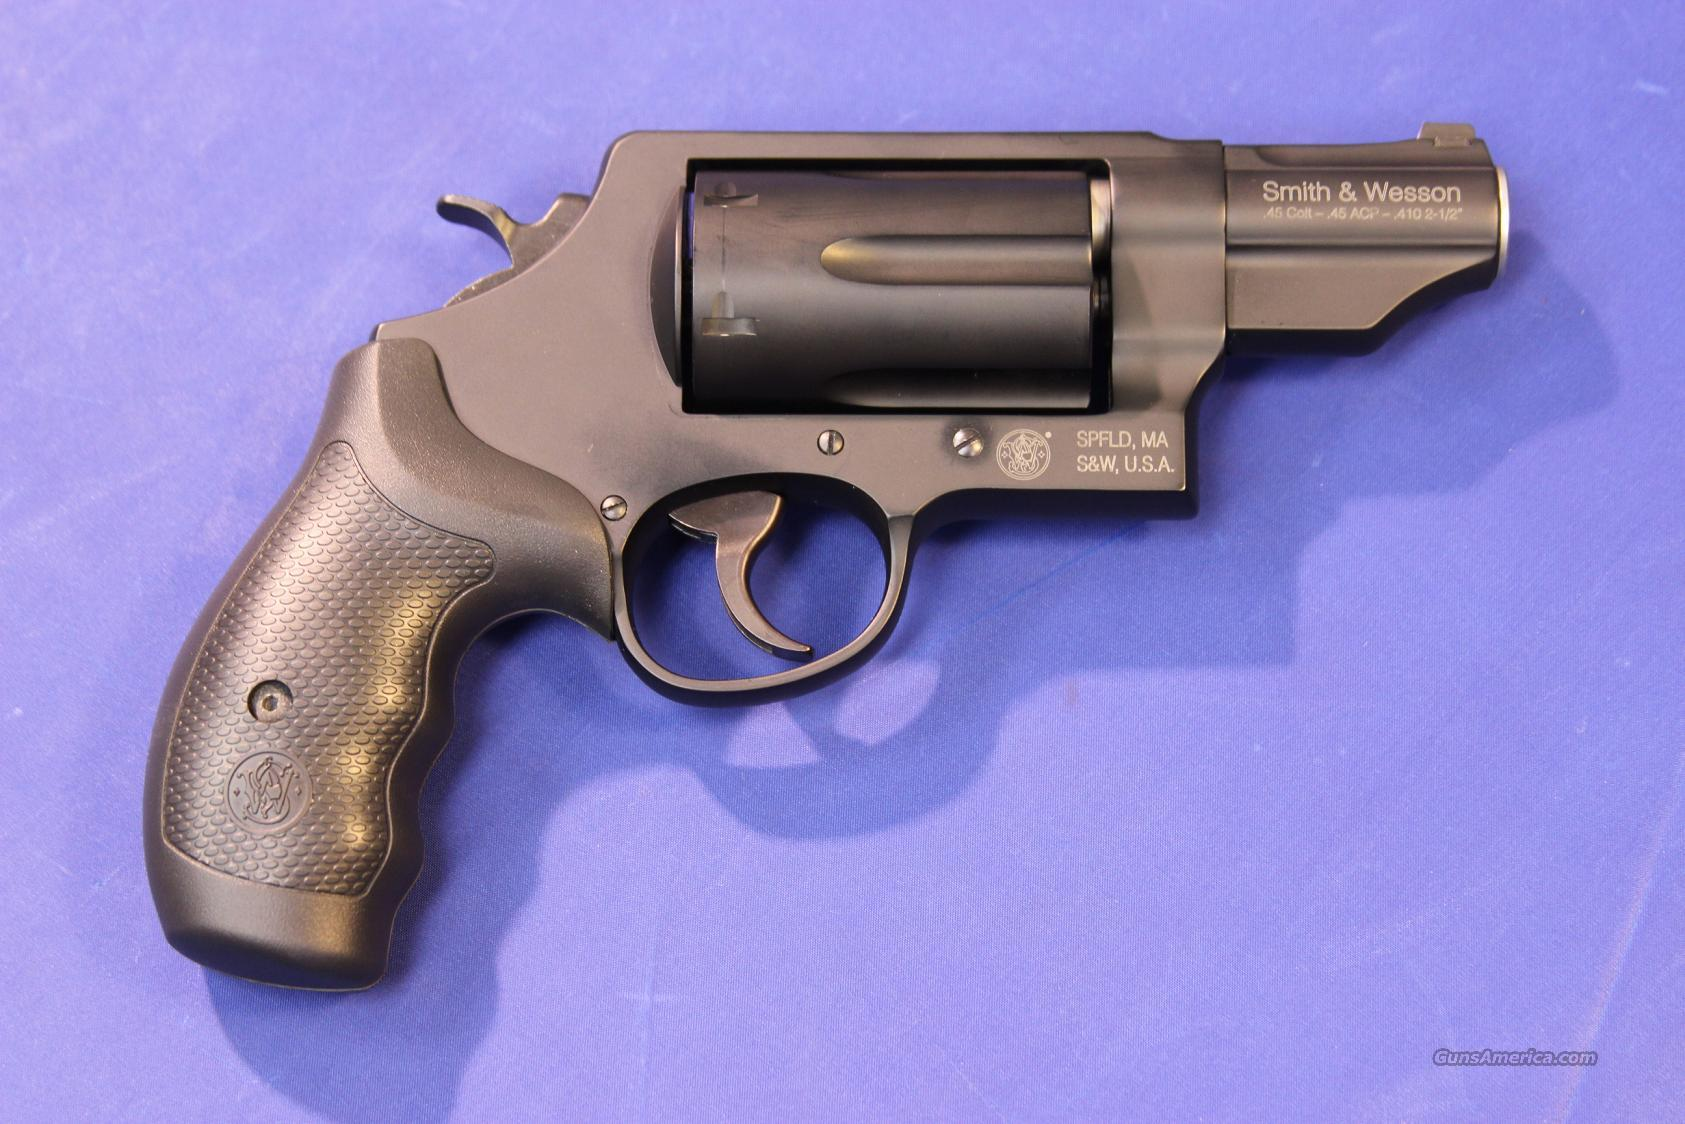 SMITH & WESSON GOVERNOR .45/.410  Guns > Pistols > Smith & Wesson Revolvers > Full Frame Revolver